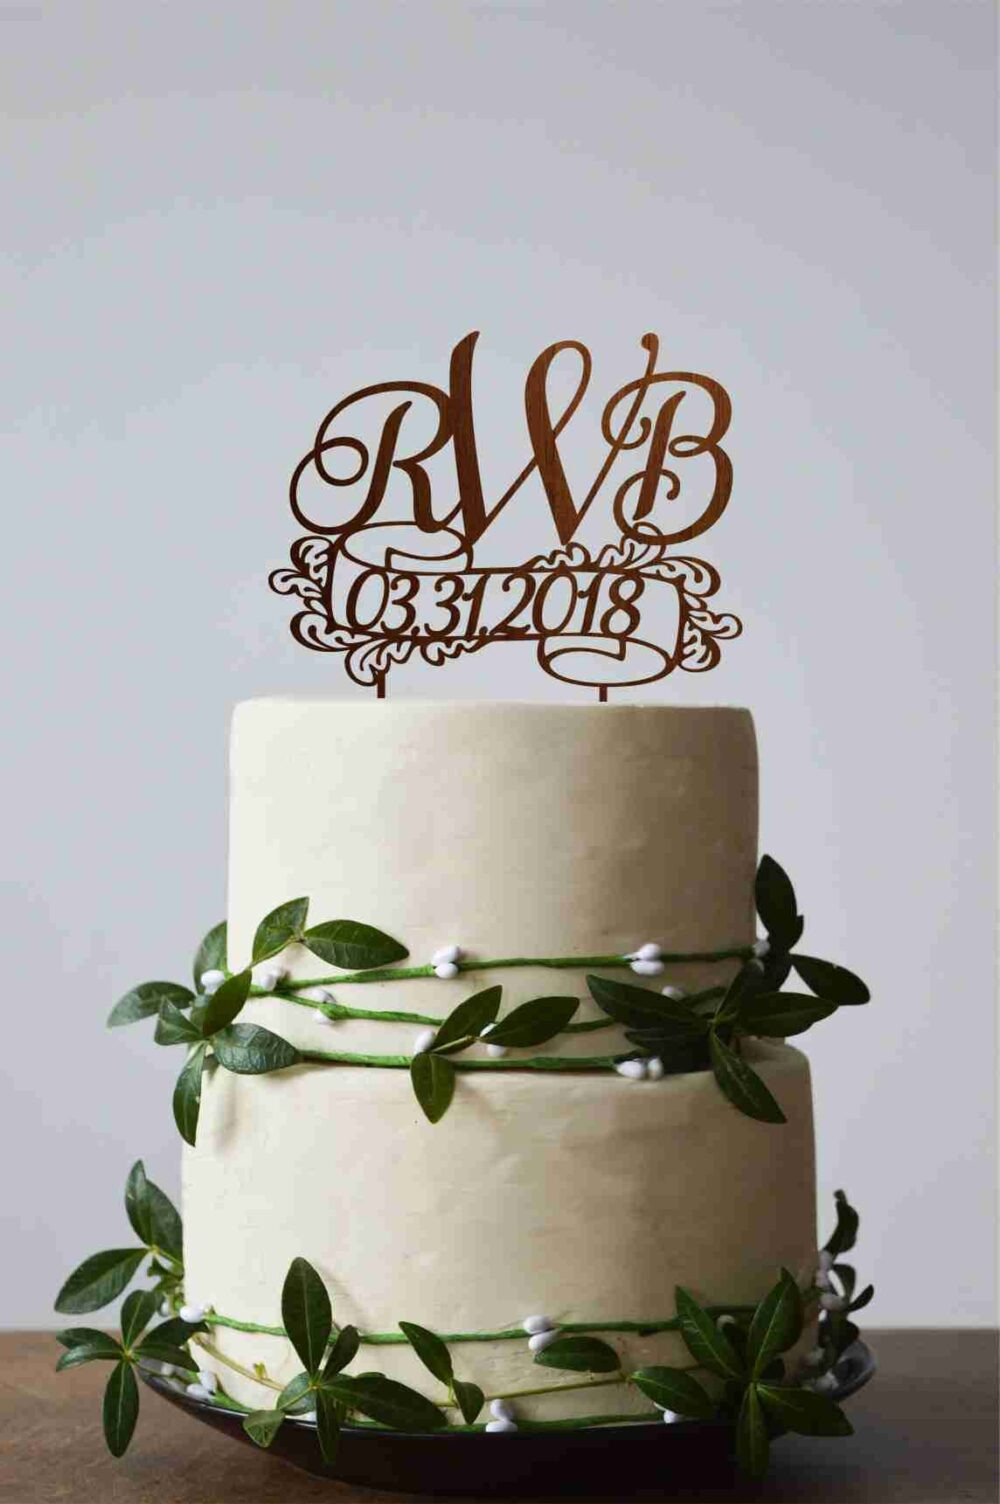 Three Letters Cake Topper, Initial Wedding Monogram Wedding Monogram Cake Topper For Rustic